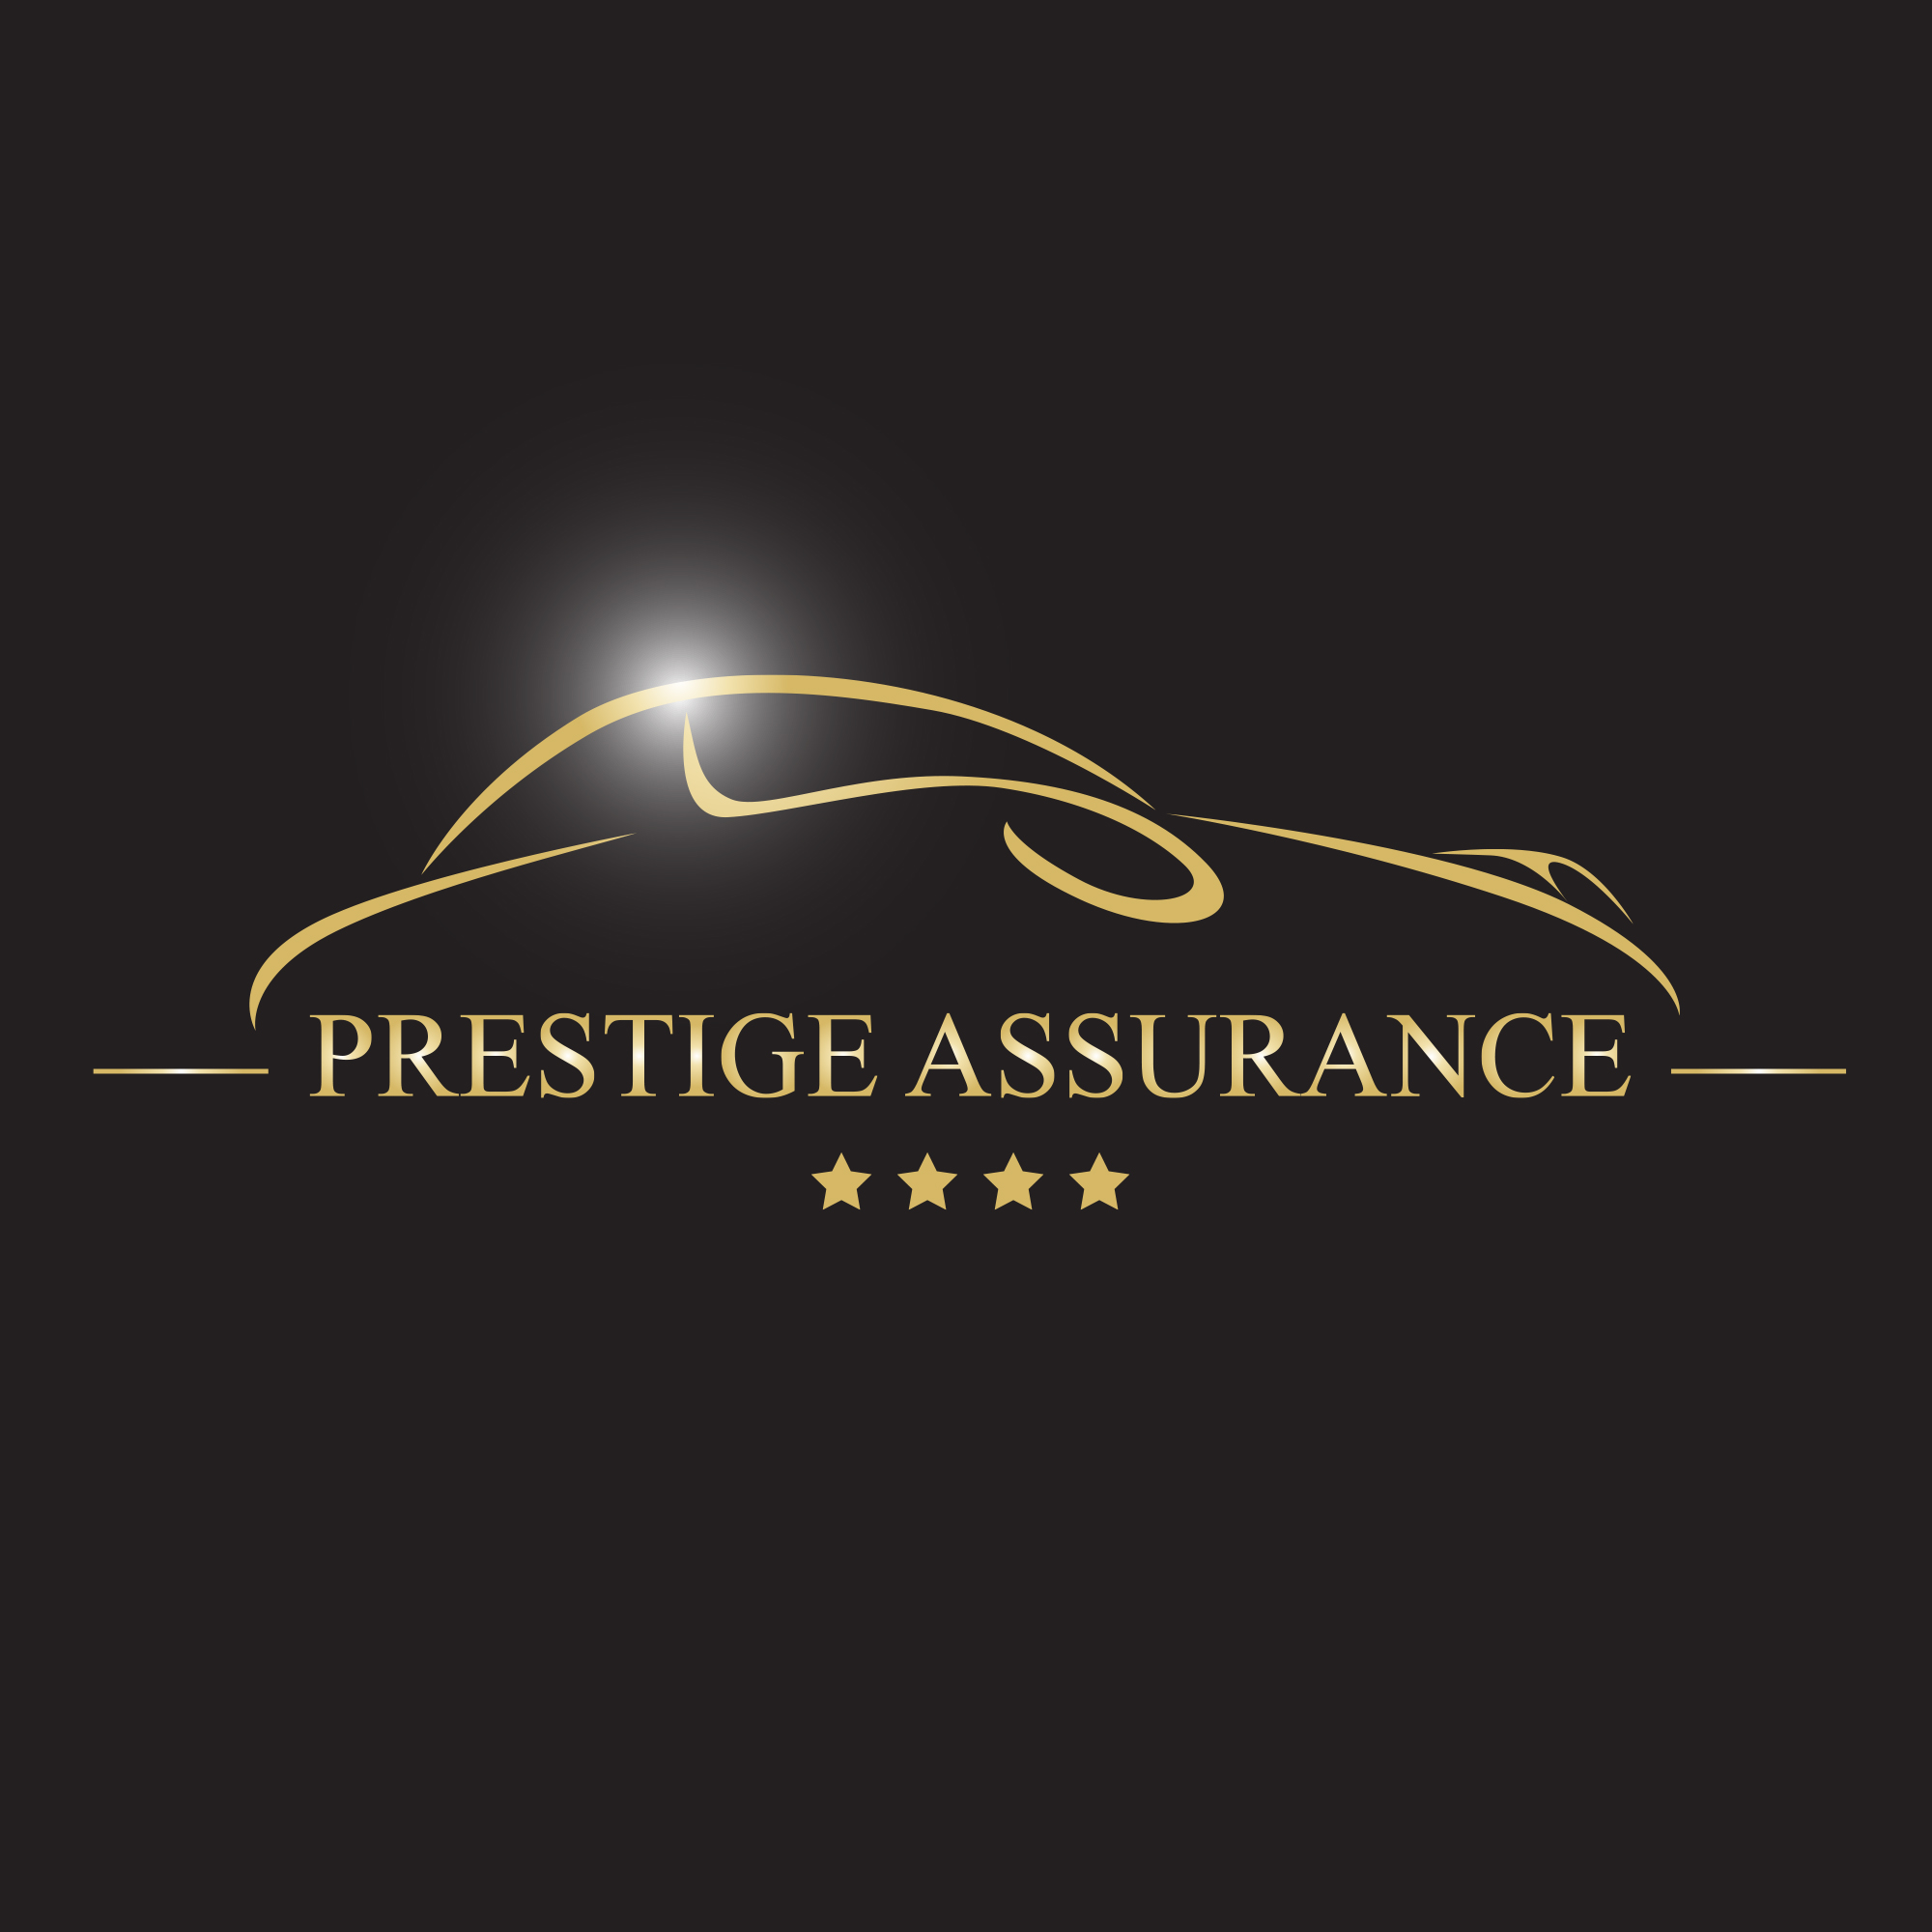 devis d assurance bmw x6 au meilleur prix aix en provence voiture de luxe prestige assurance. Black Bedroom Furniture Sets. Home Design Ideas